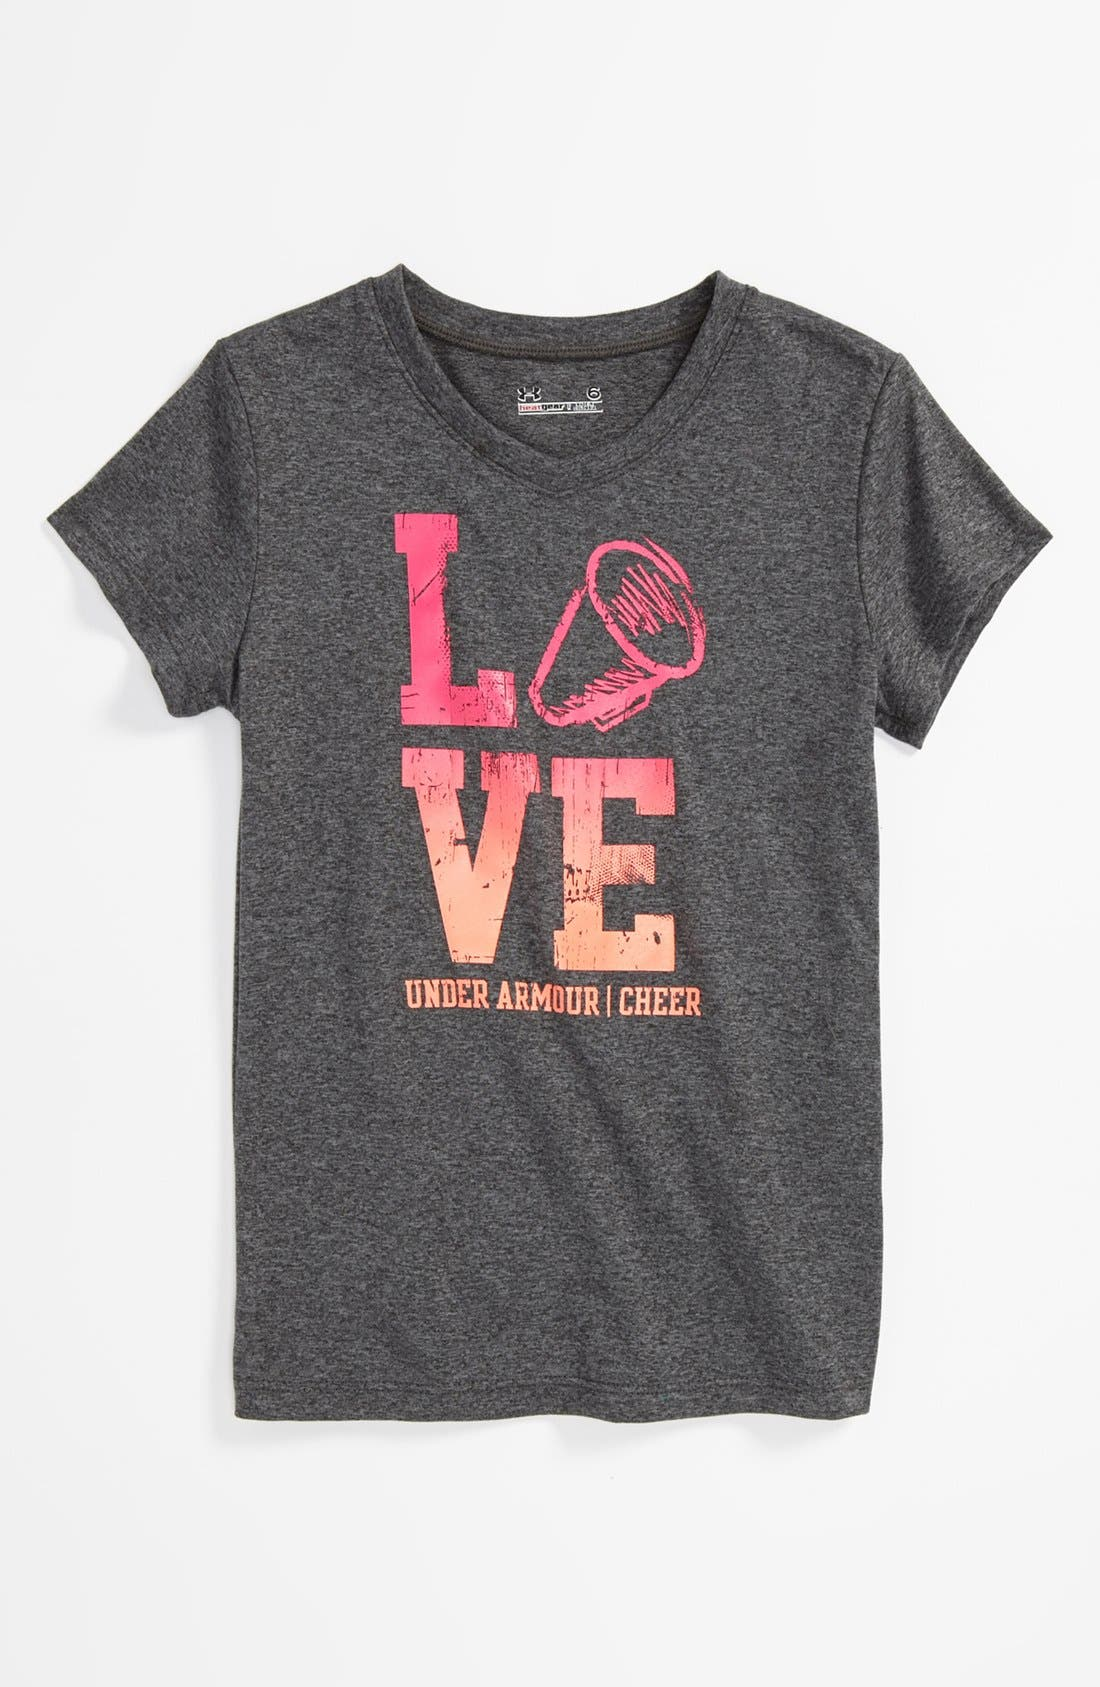 Alternate Image 1 Selected - Under Armour 'Cheer' Tee (Toddler Girls)